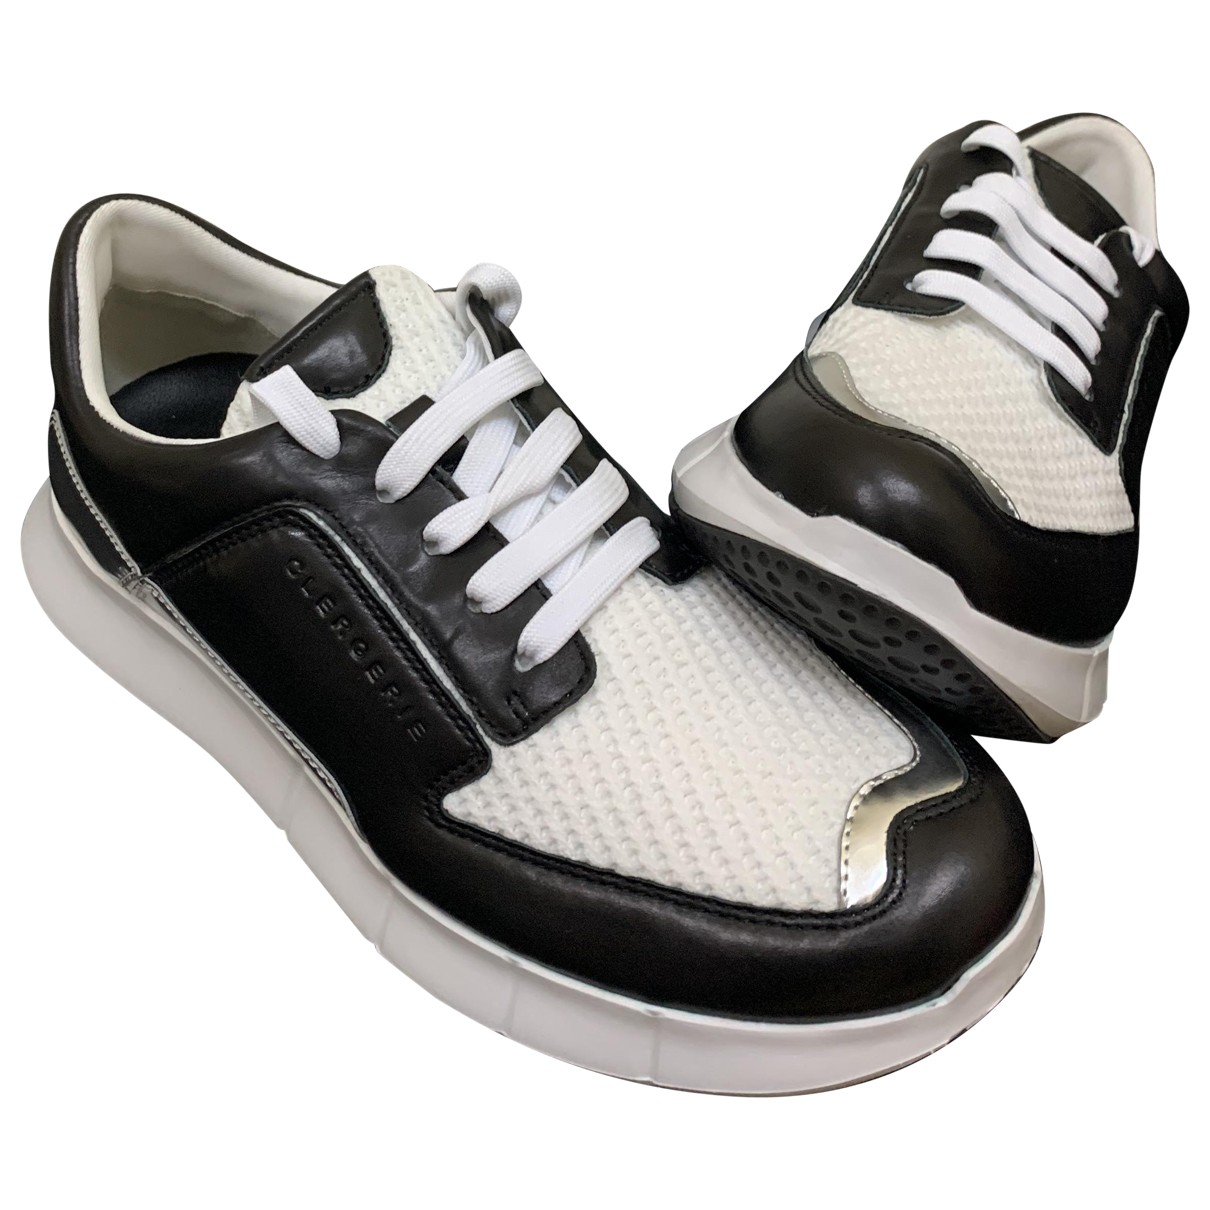 Robert Clergerie \N Black Leather Trainers for Women 39 EU